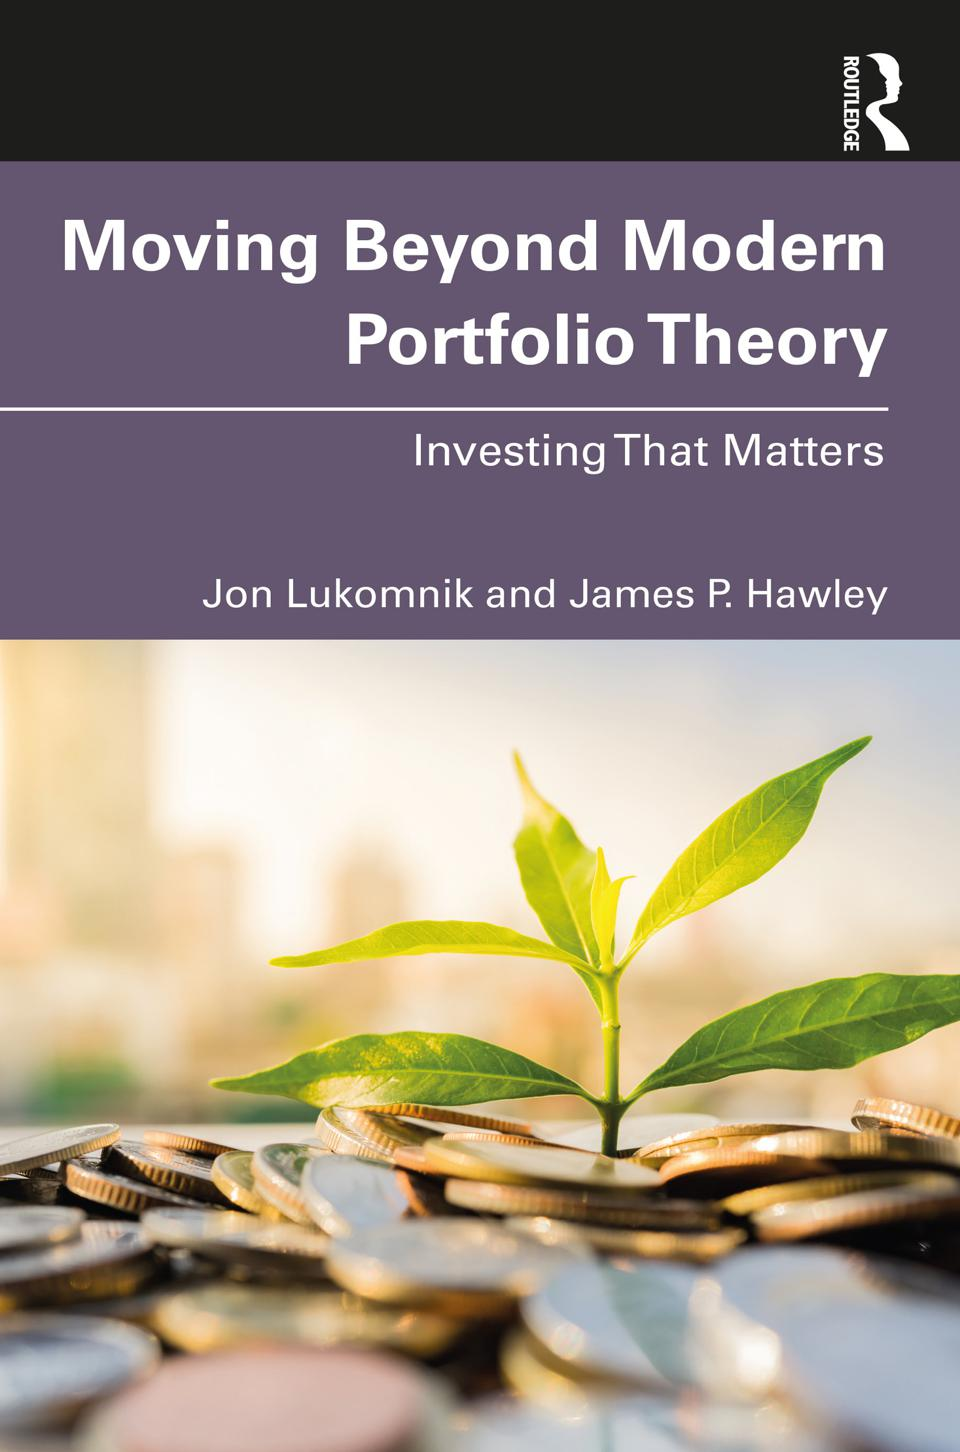 Book Cover to ″Moving Beyond Modern Portfolio Theory″